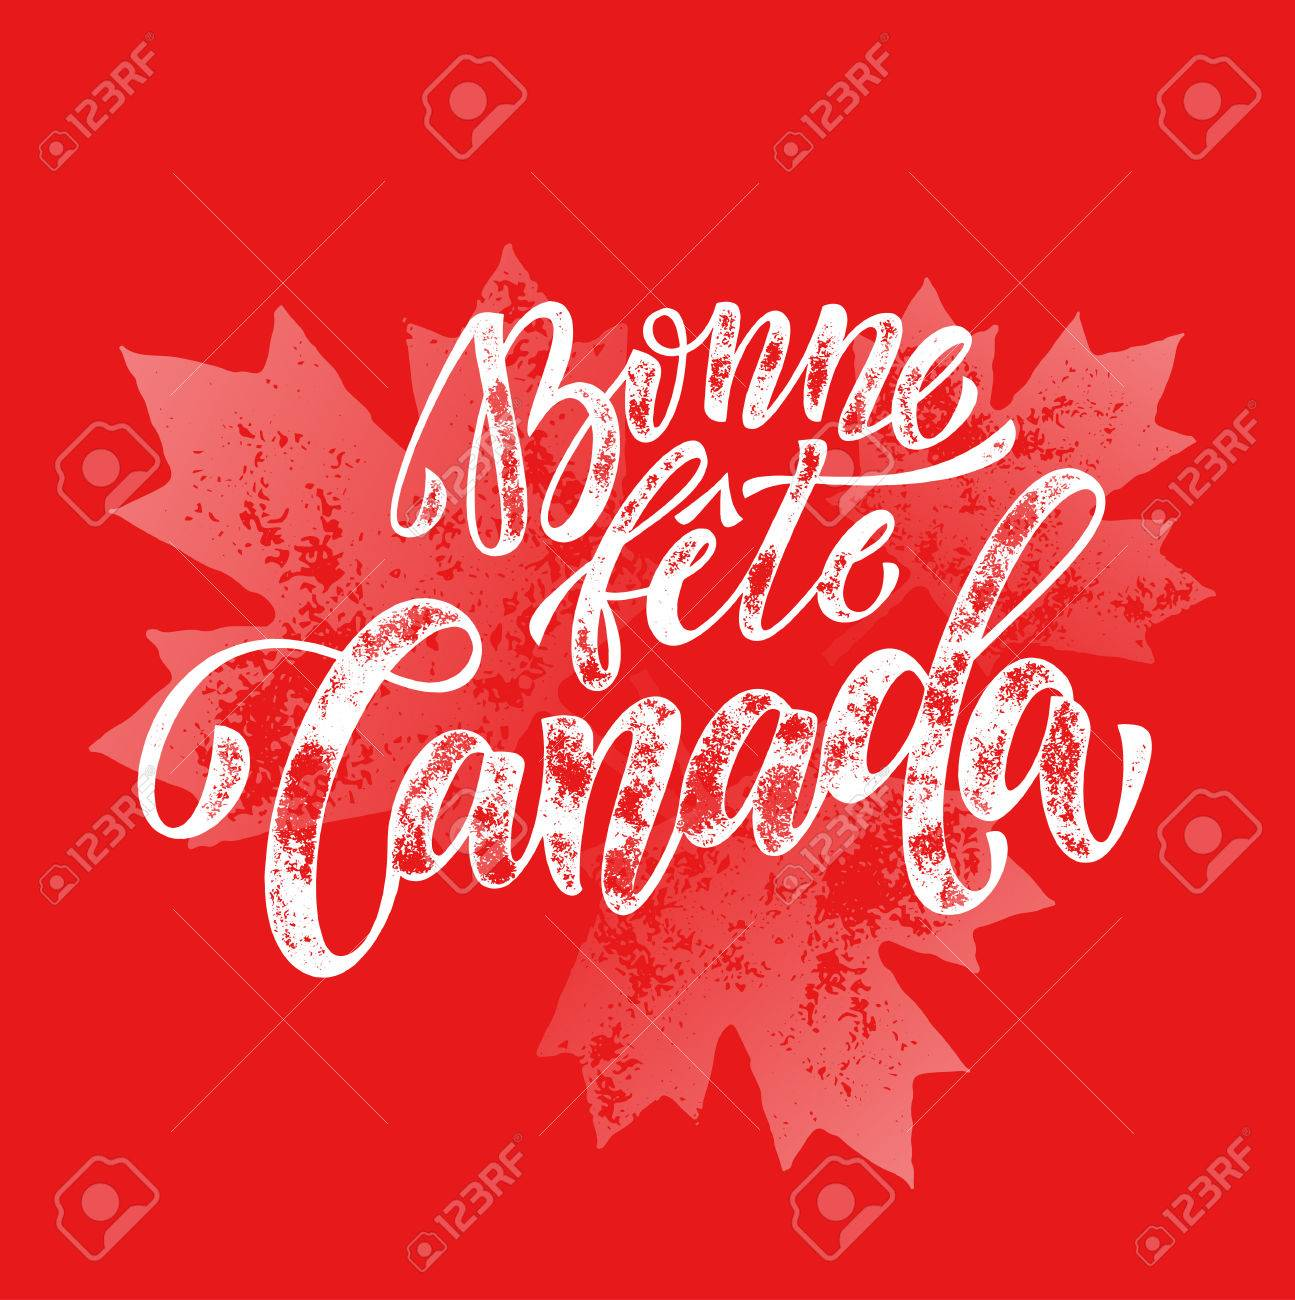 Bonne fete canada day greeting card poster in french canadian bonne fete canada day greeting card poster in french canadian national celebration flyer placard with m4hsunfo